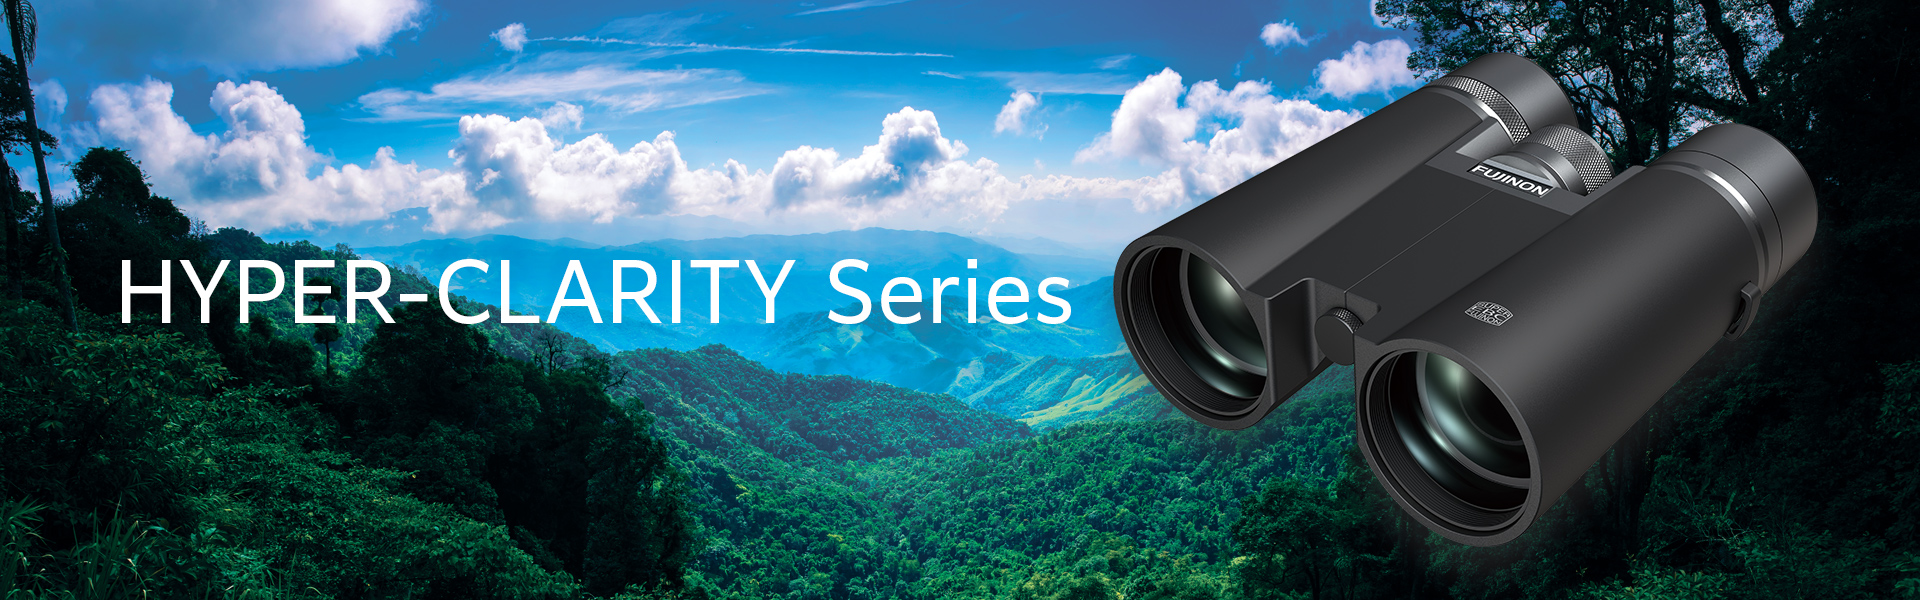 [image] Black Fuji Hyper-Clarity Series binoculars in front of green, mountainous hills and blue sky landscape background